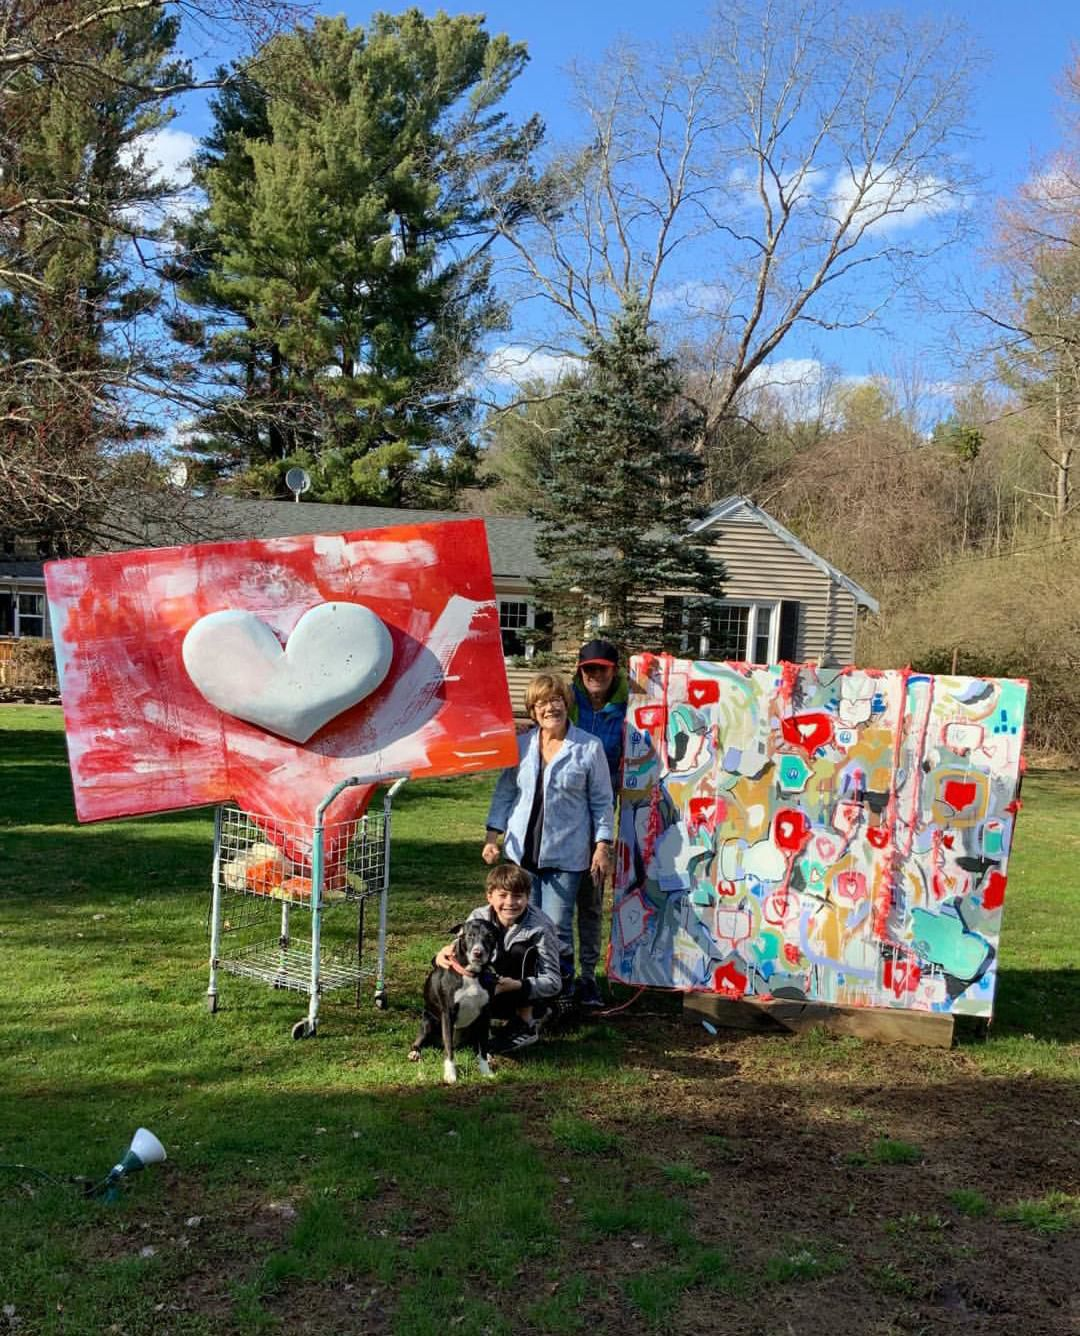 Torrington gallery encourages residents, businesses to put up hearts of support